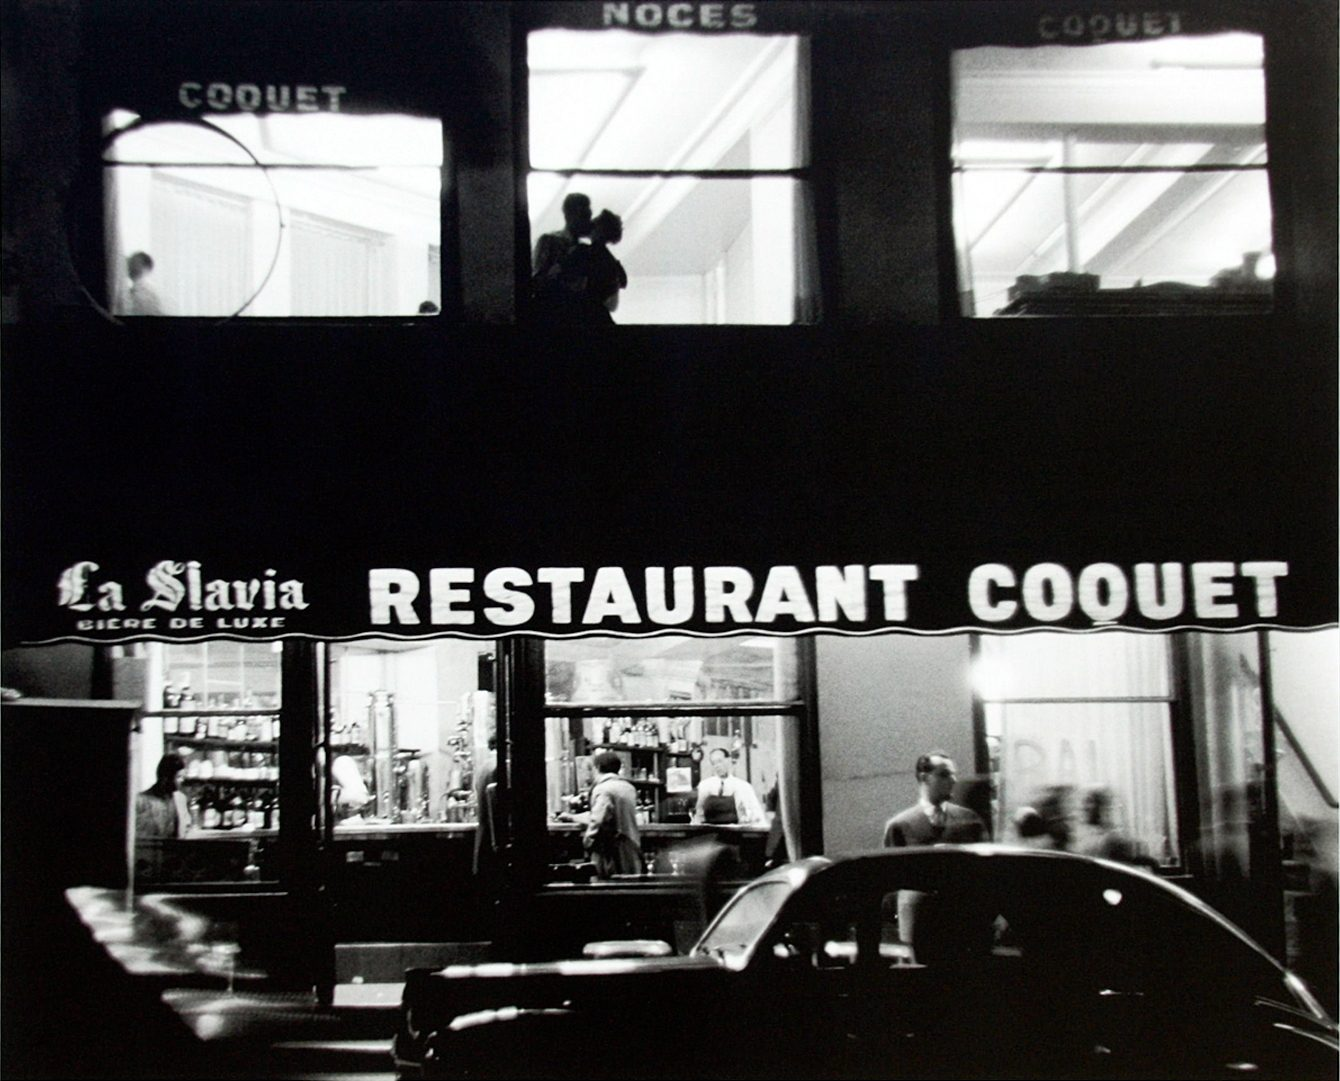 Le restaurant Coquet (Restaurant Coquet)